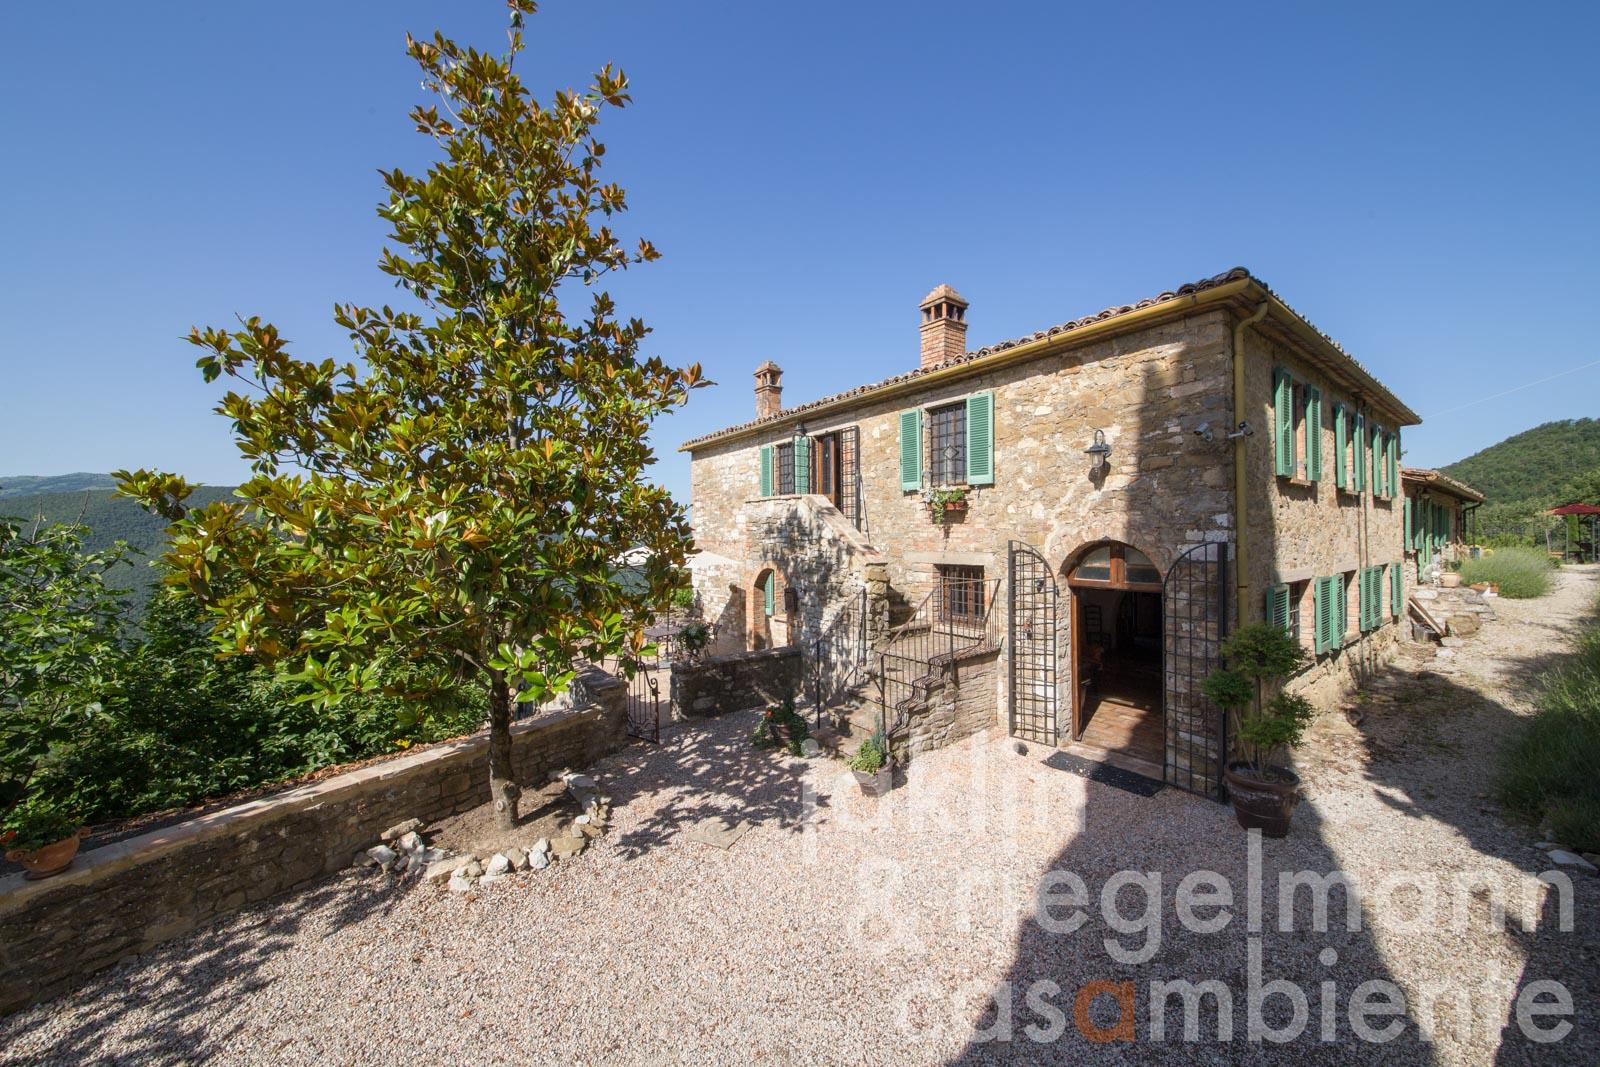 The Umbrian country estate for sale with annexe, garden and pool in a panoramic south facing location